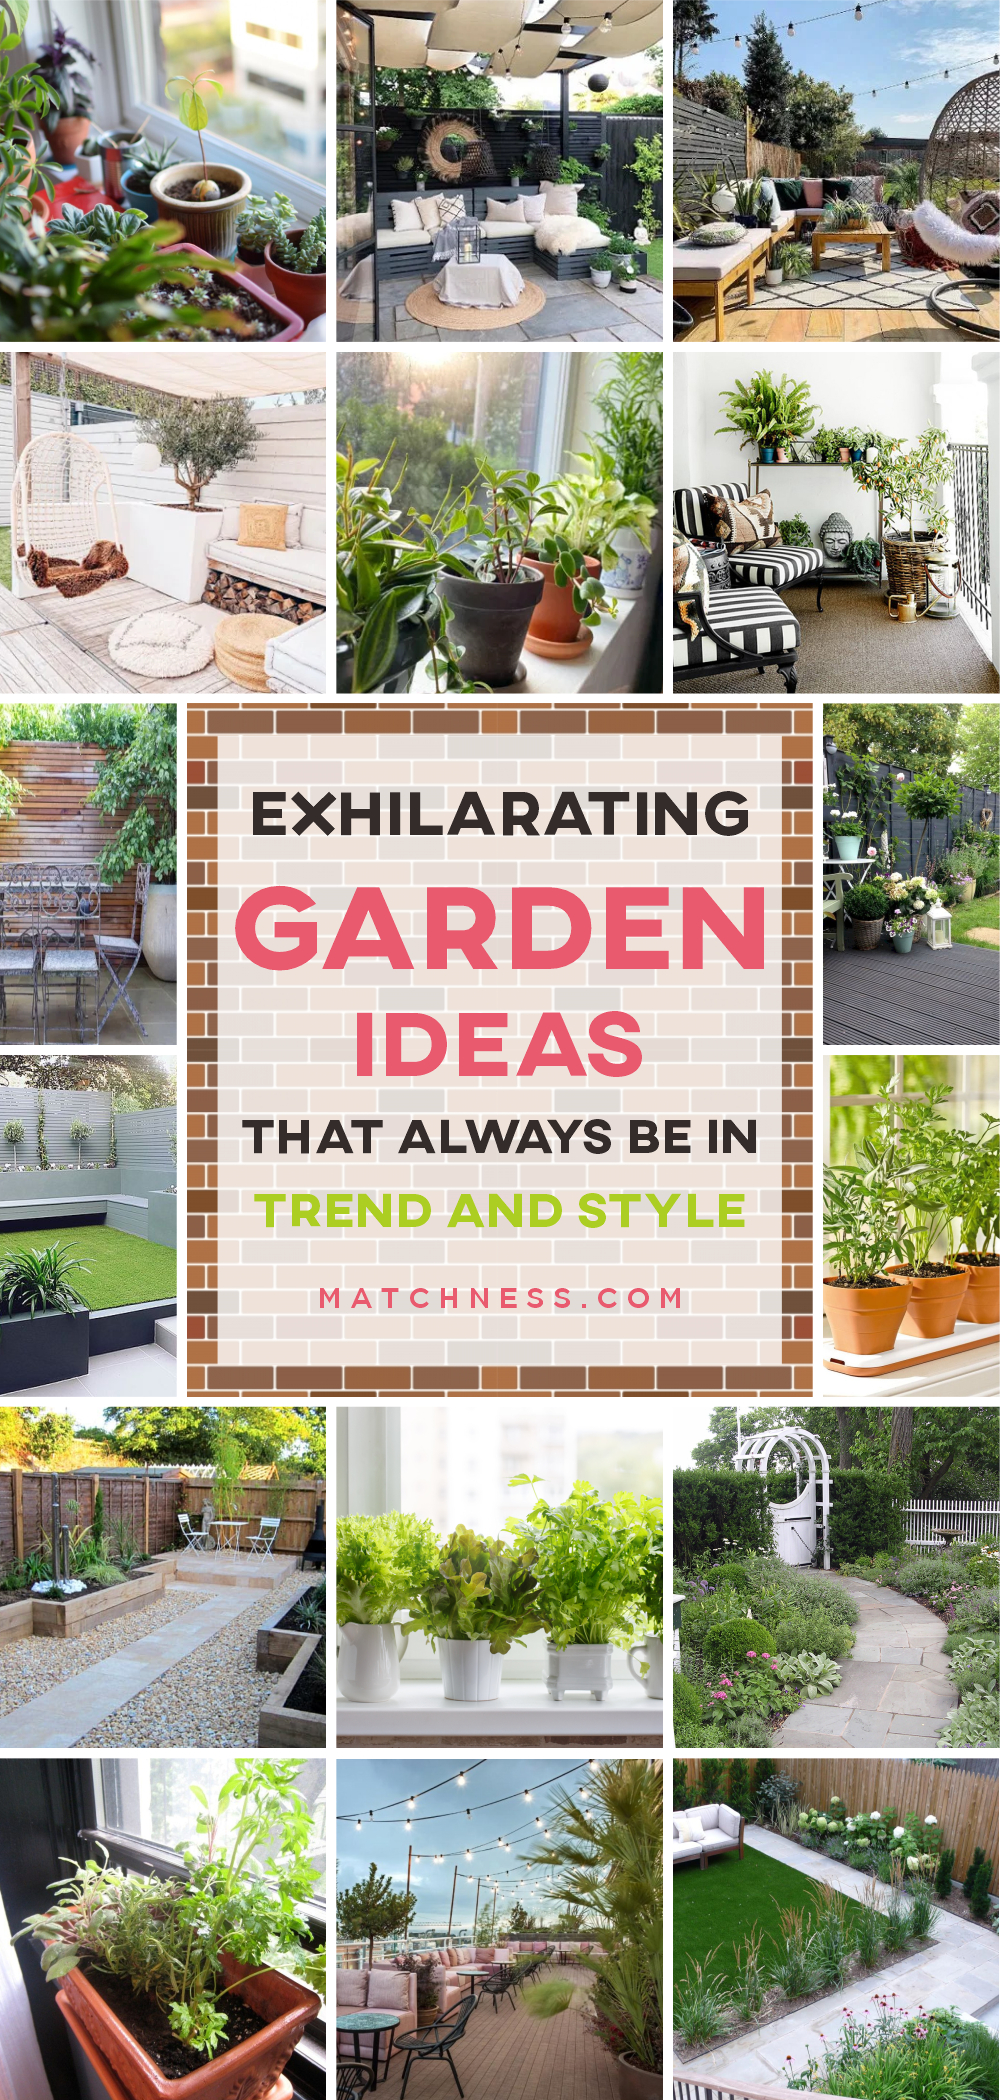 Exhilarating garden ideas that always be in trend and style 1